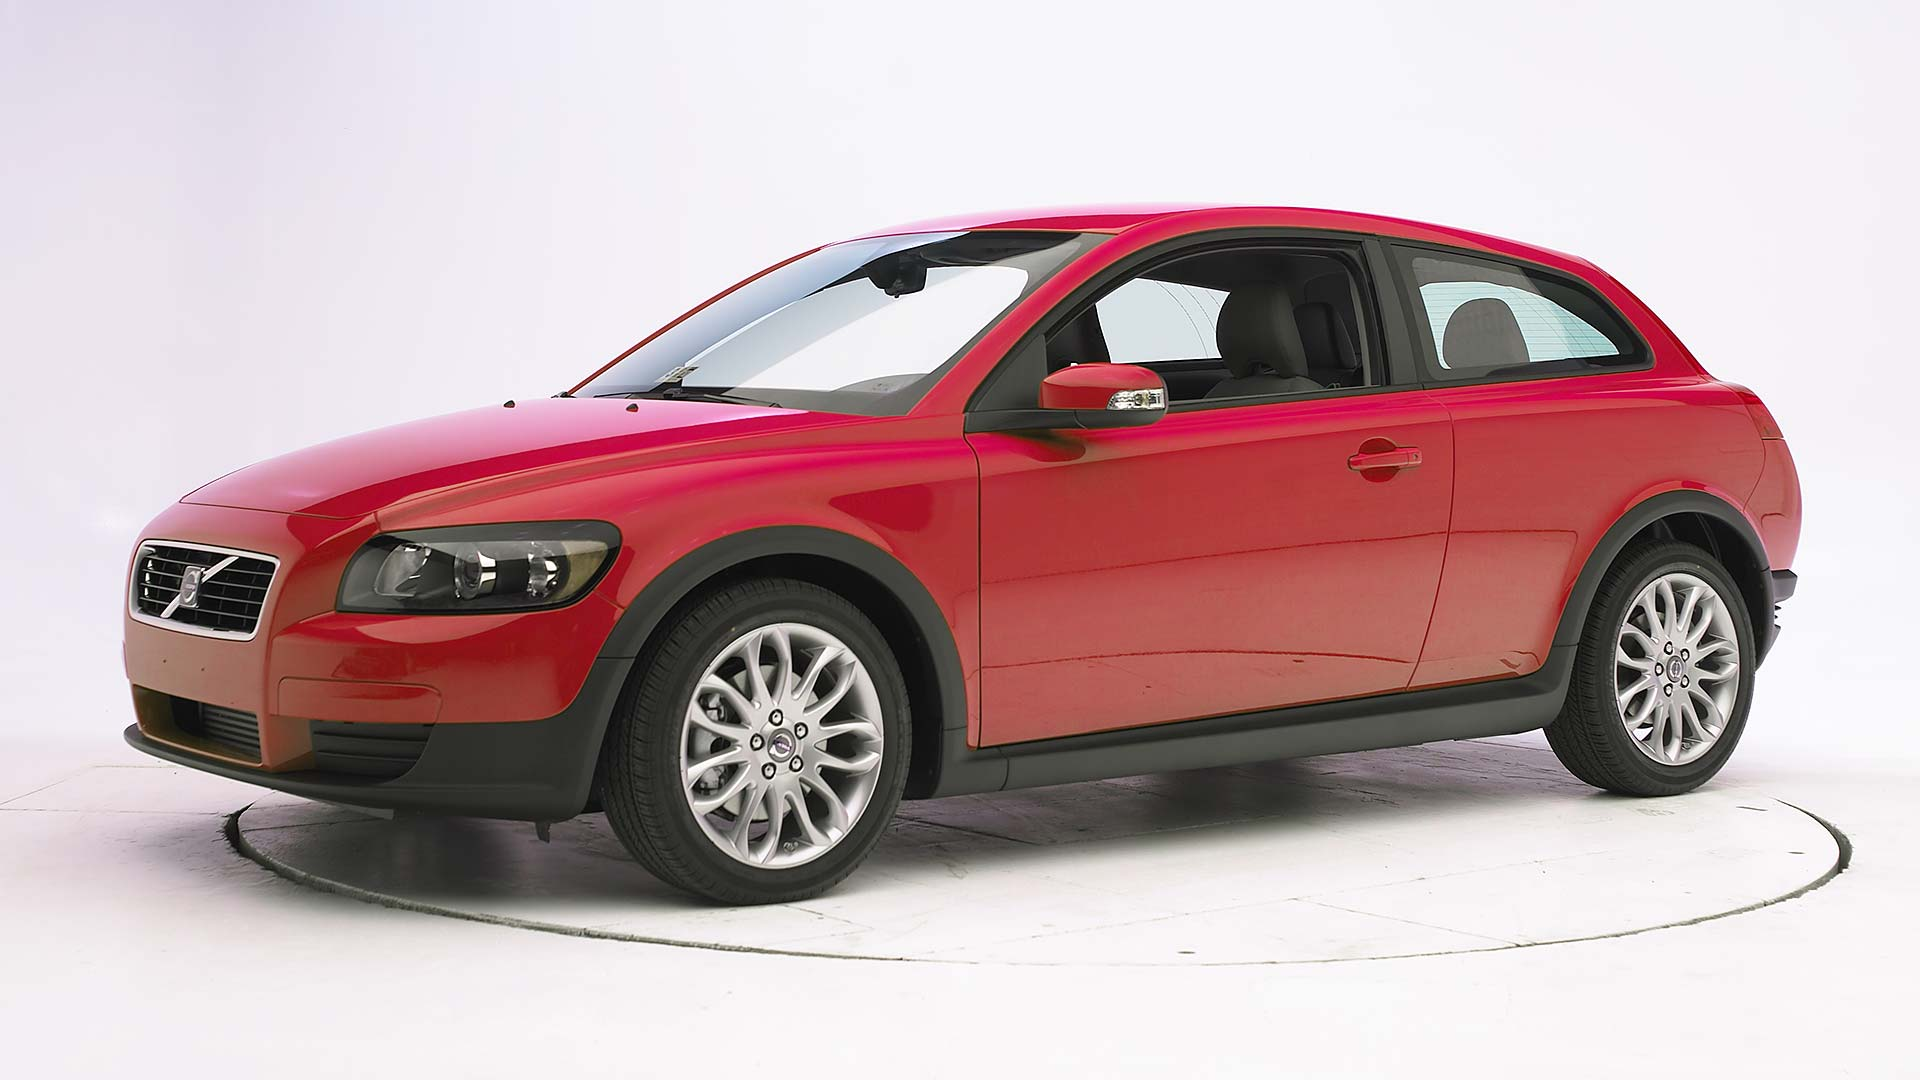 2009 Volvo C30 2-door hatchback